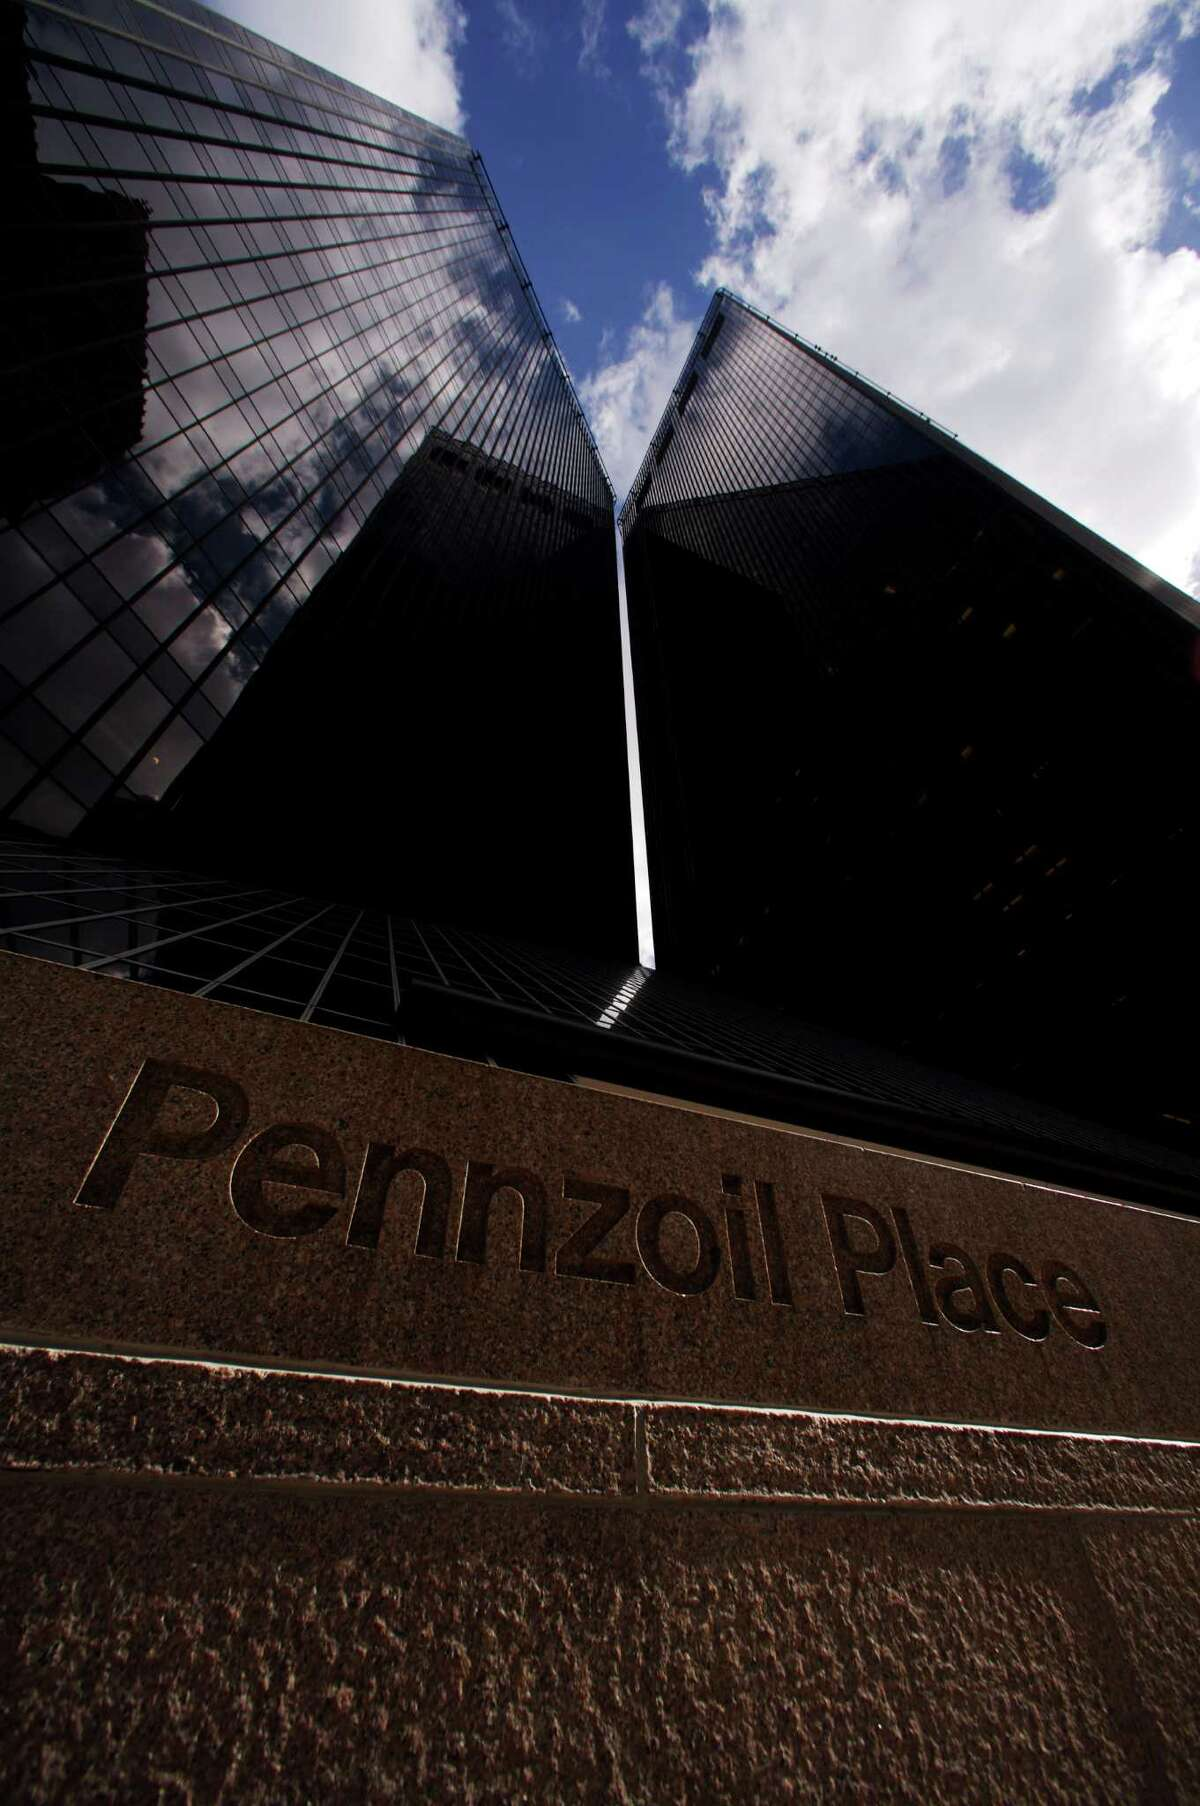 Pennzoil Place: Completed in 1975, the project, two 36-story trapezoidal towers of dark bronze-tinted glass connected by a glass-enclosed courtyard, was designed by Philip Johnson and John Burgee. (Jim Olive Photography)